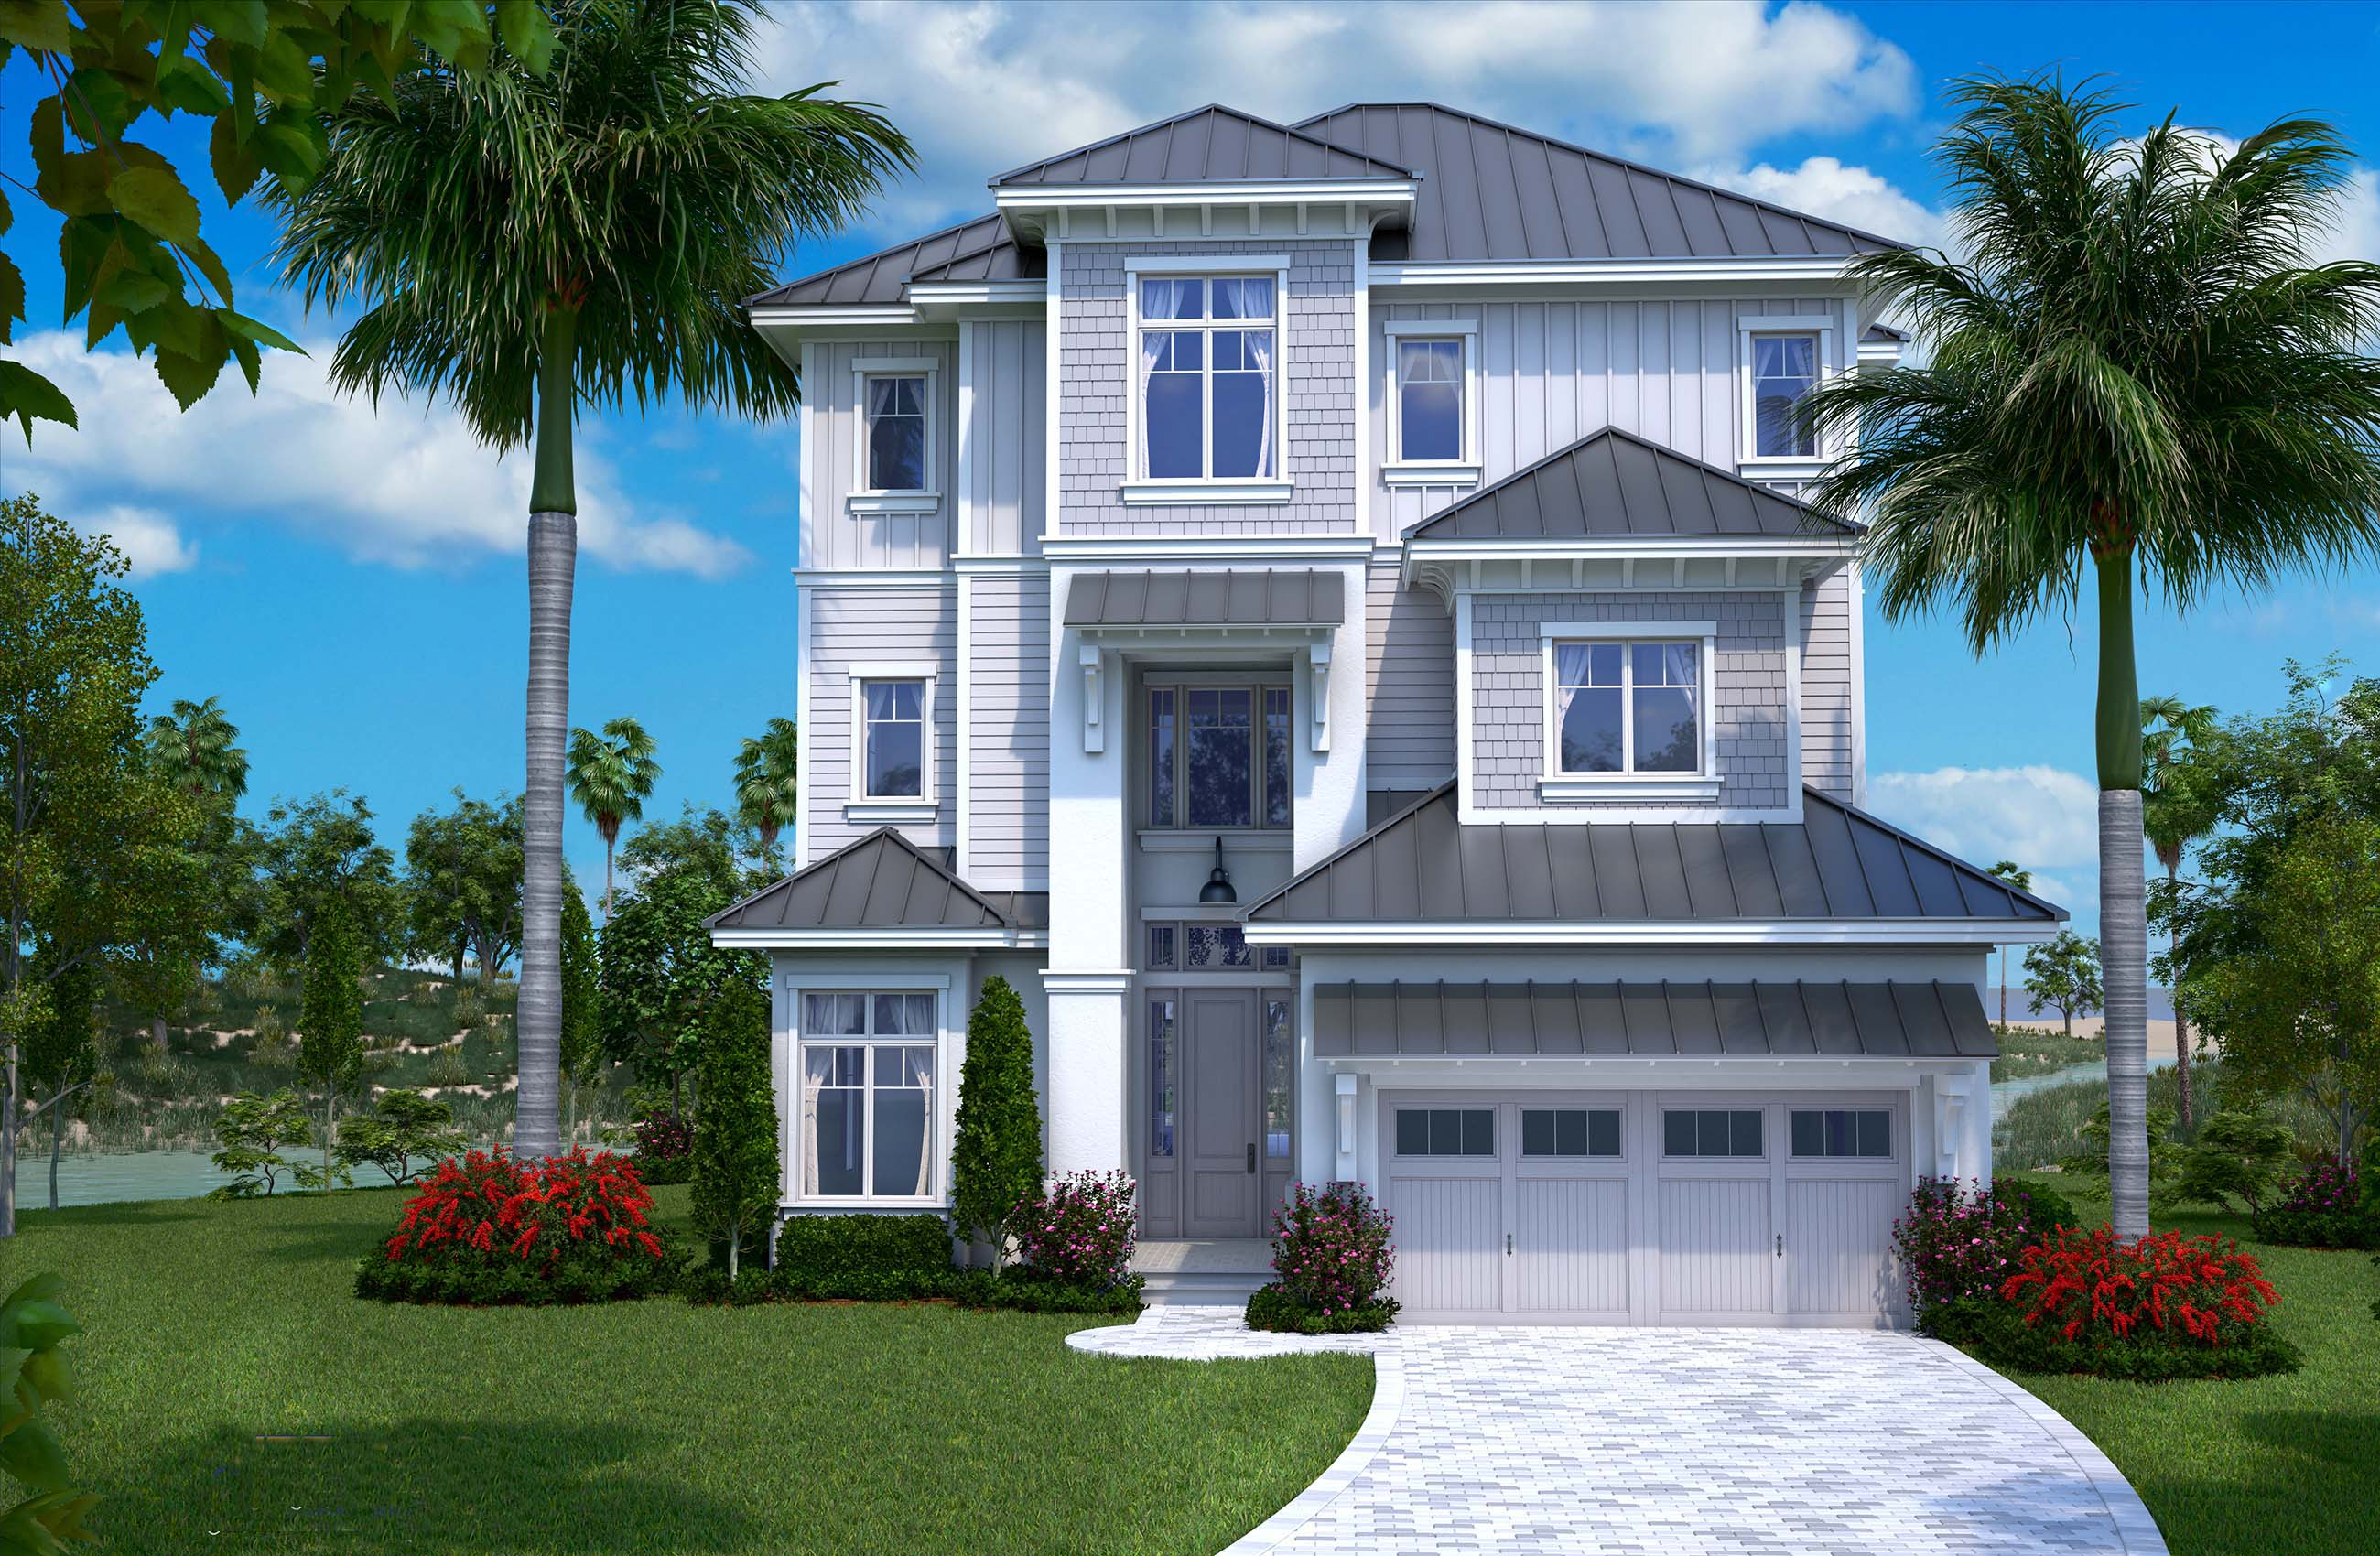 Beachfront House Plan 1751137 5 Bedrm 4800 Sq Ft Home  ThePlanCollection